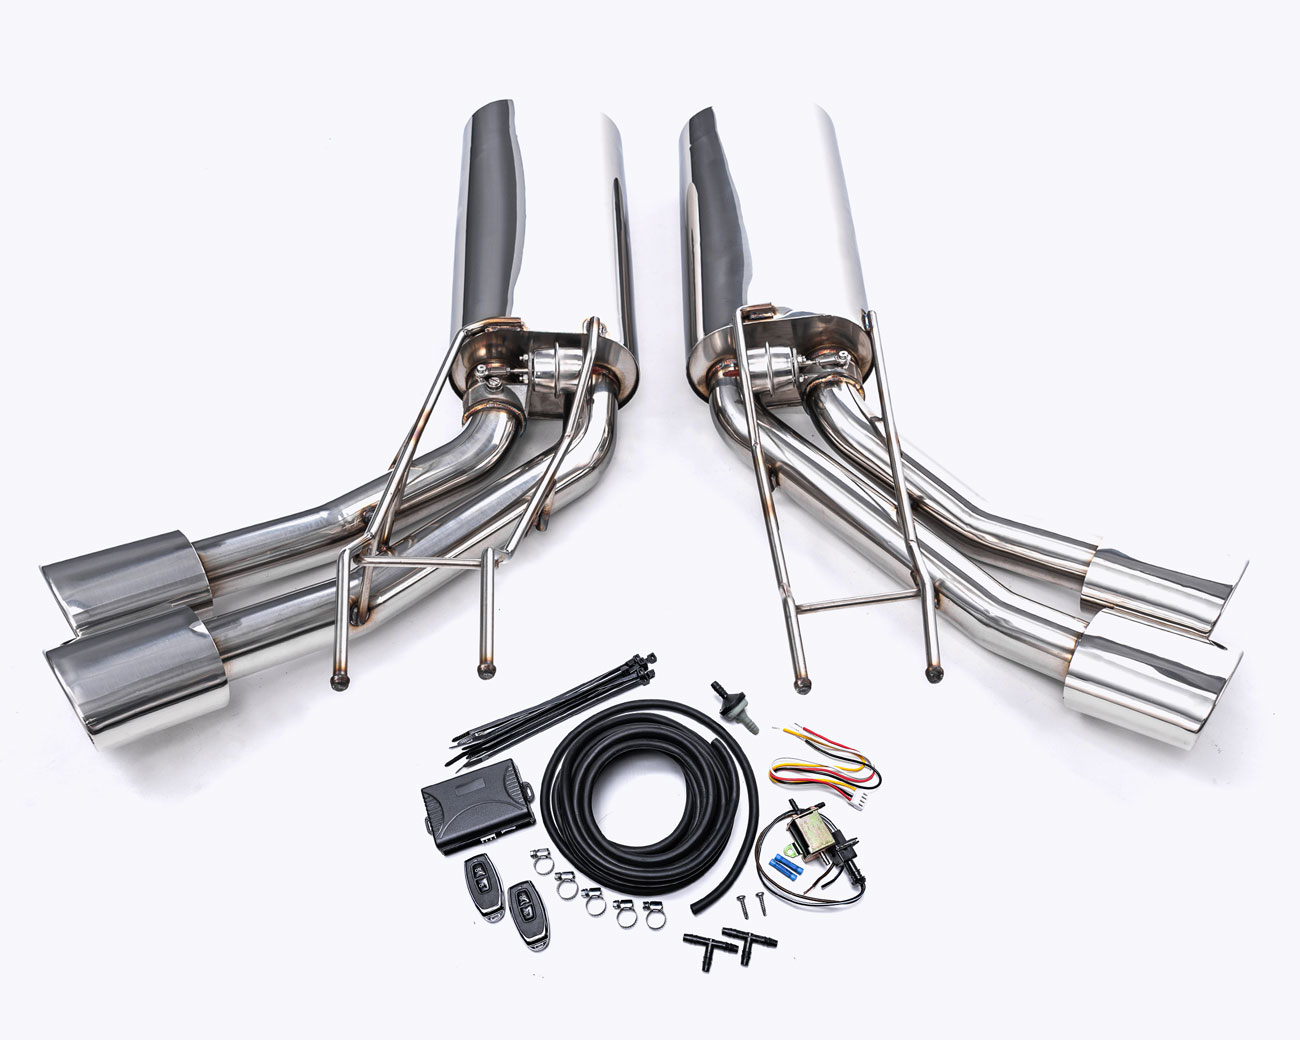 Agency Power Valvetronic Exhaust System Mercedes G500 | G55 | G63 | G65 - AP-GW463-170